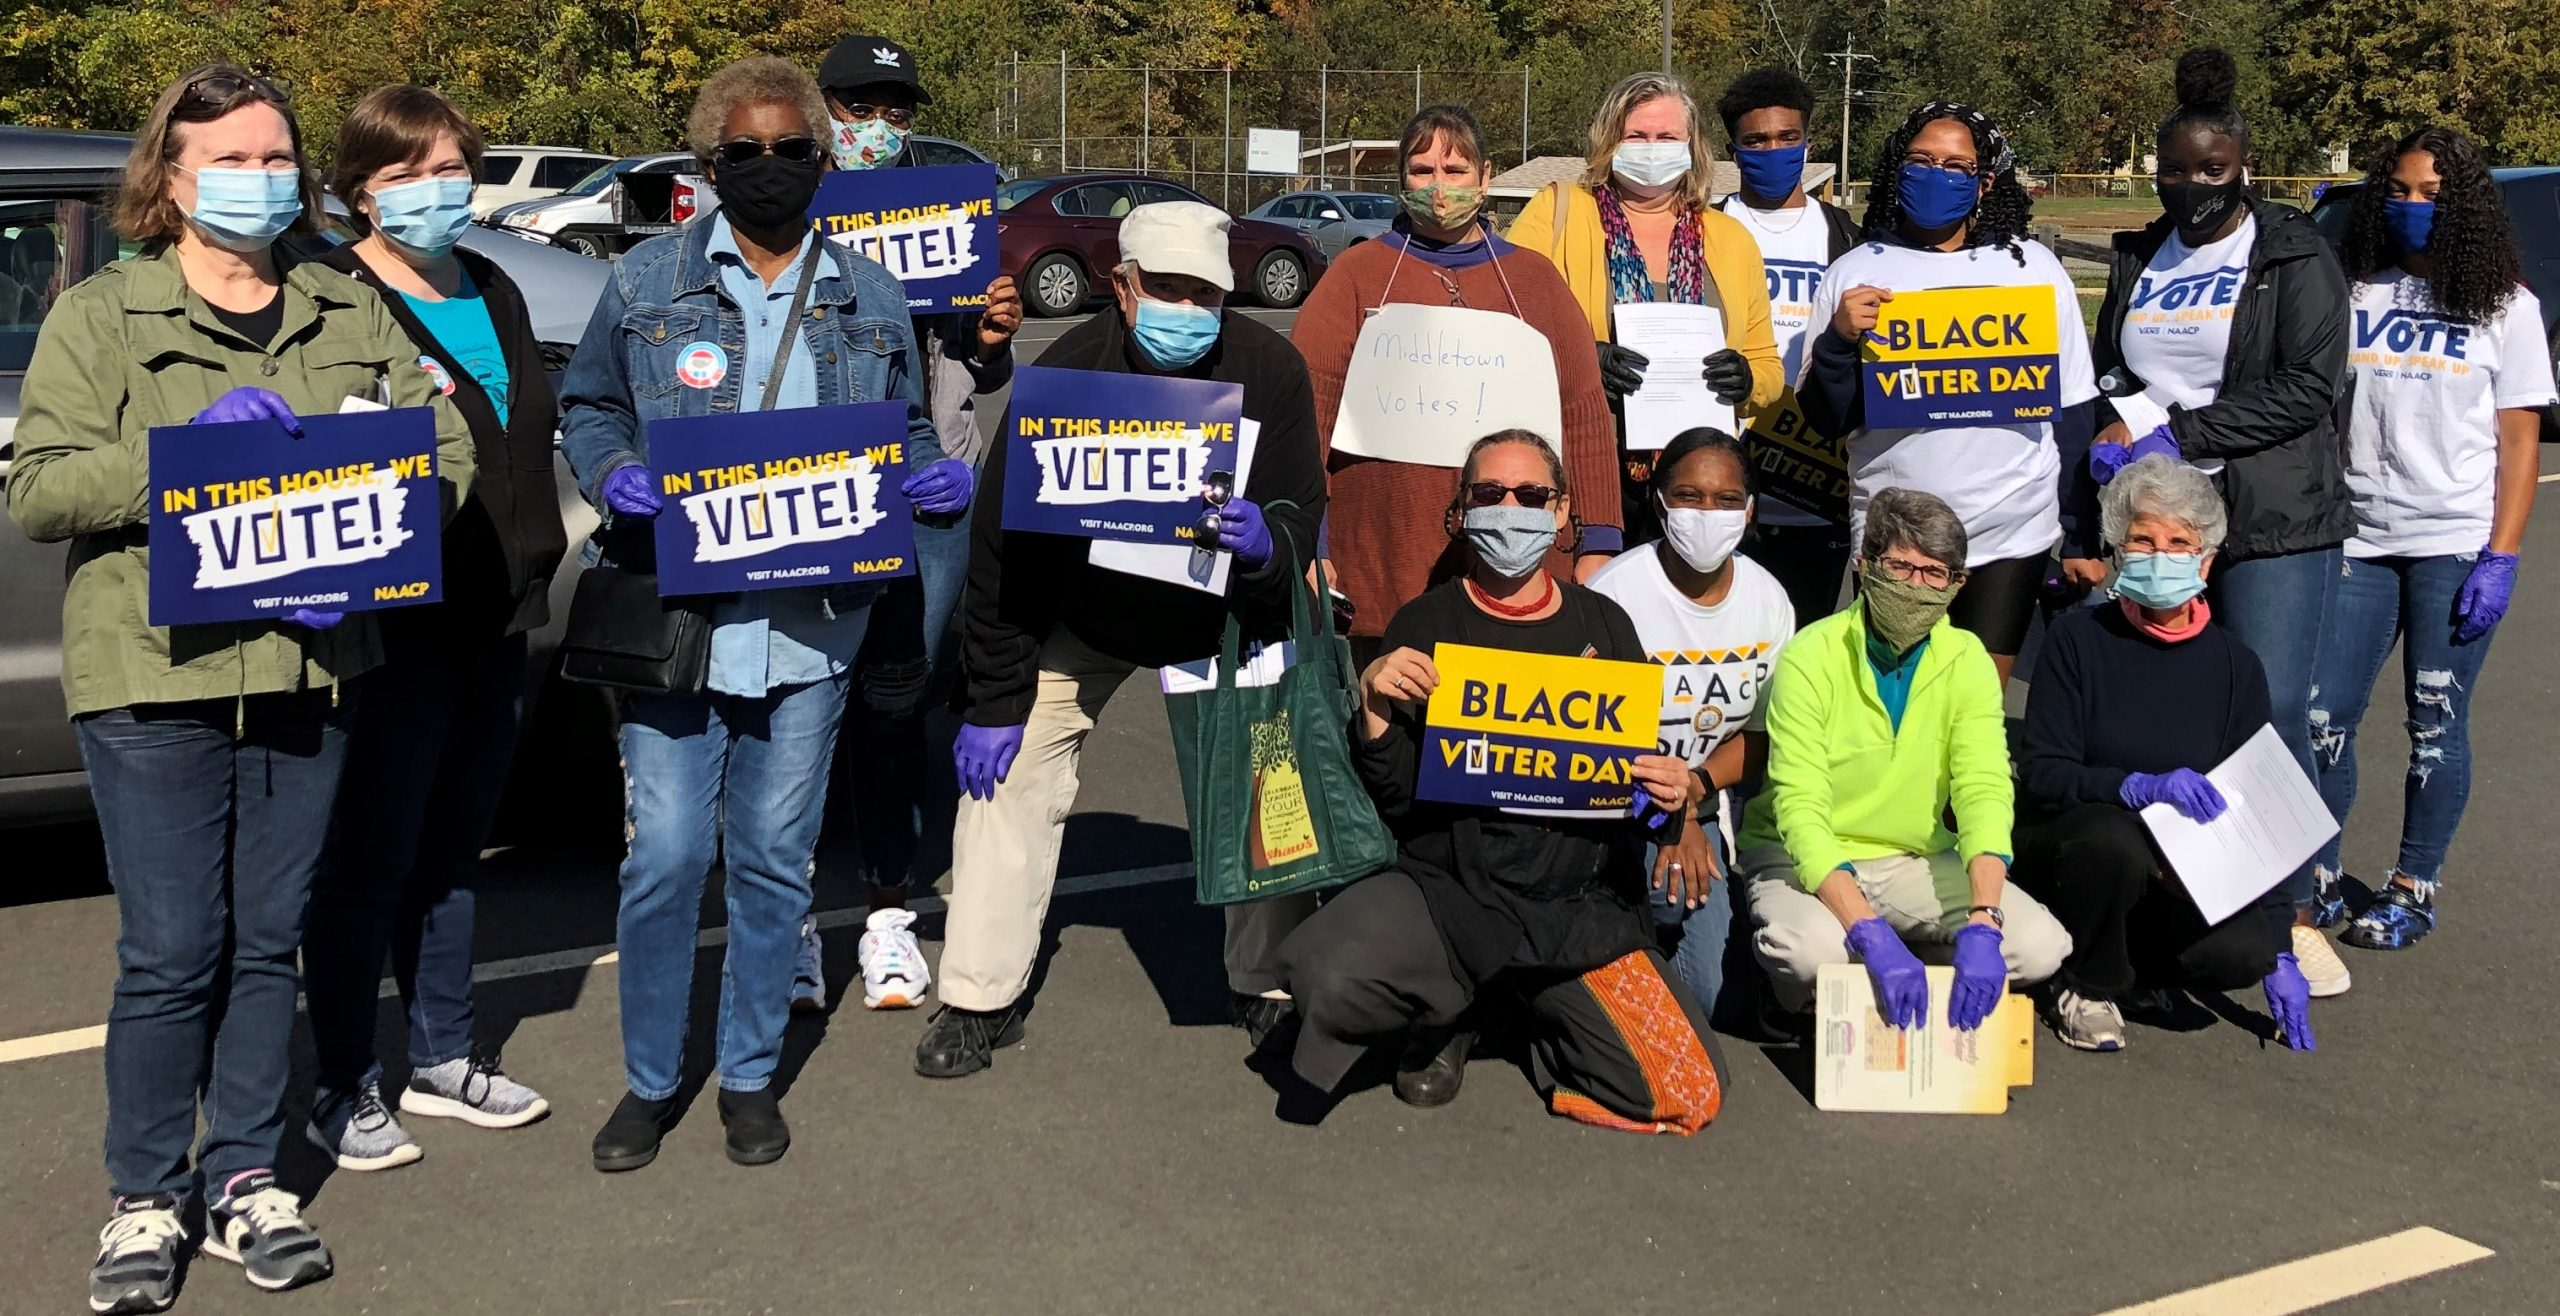 First Church Middletown and NAACP members before canvassing, 10/3/20